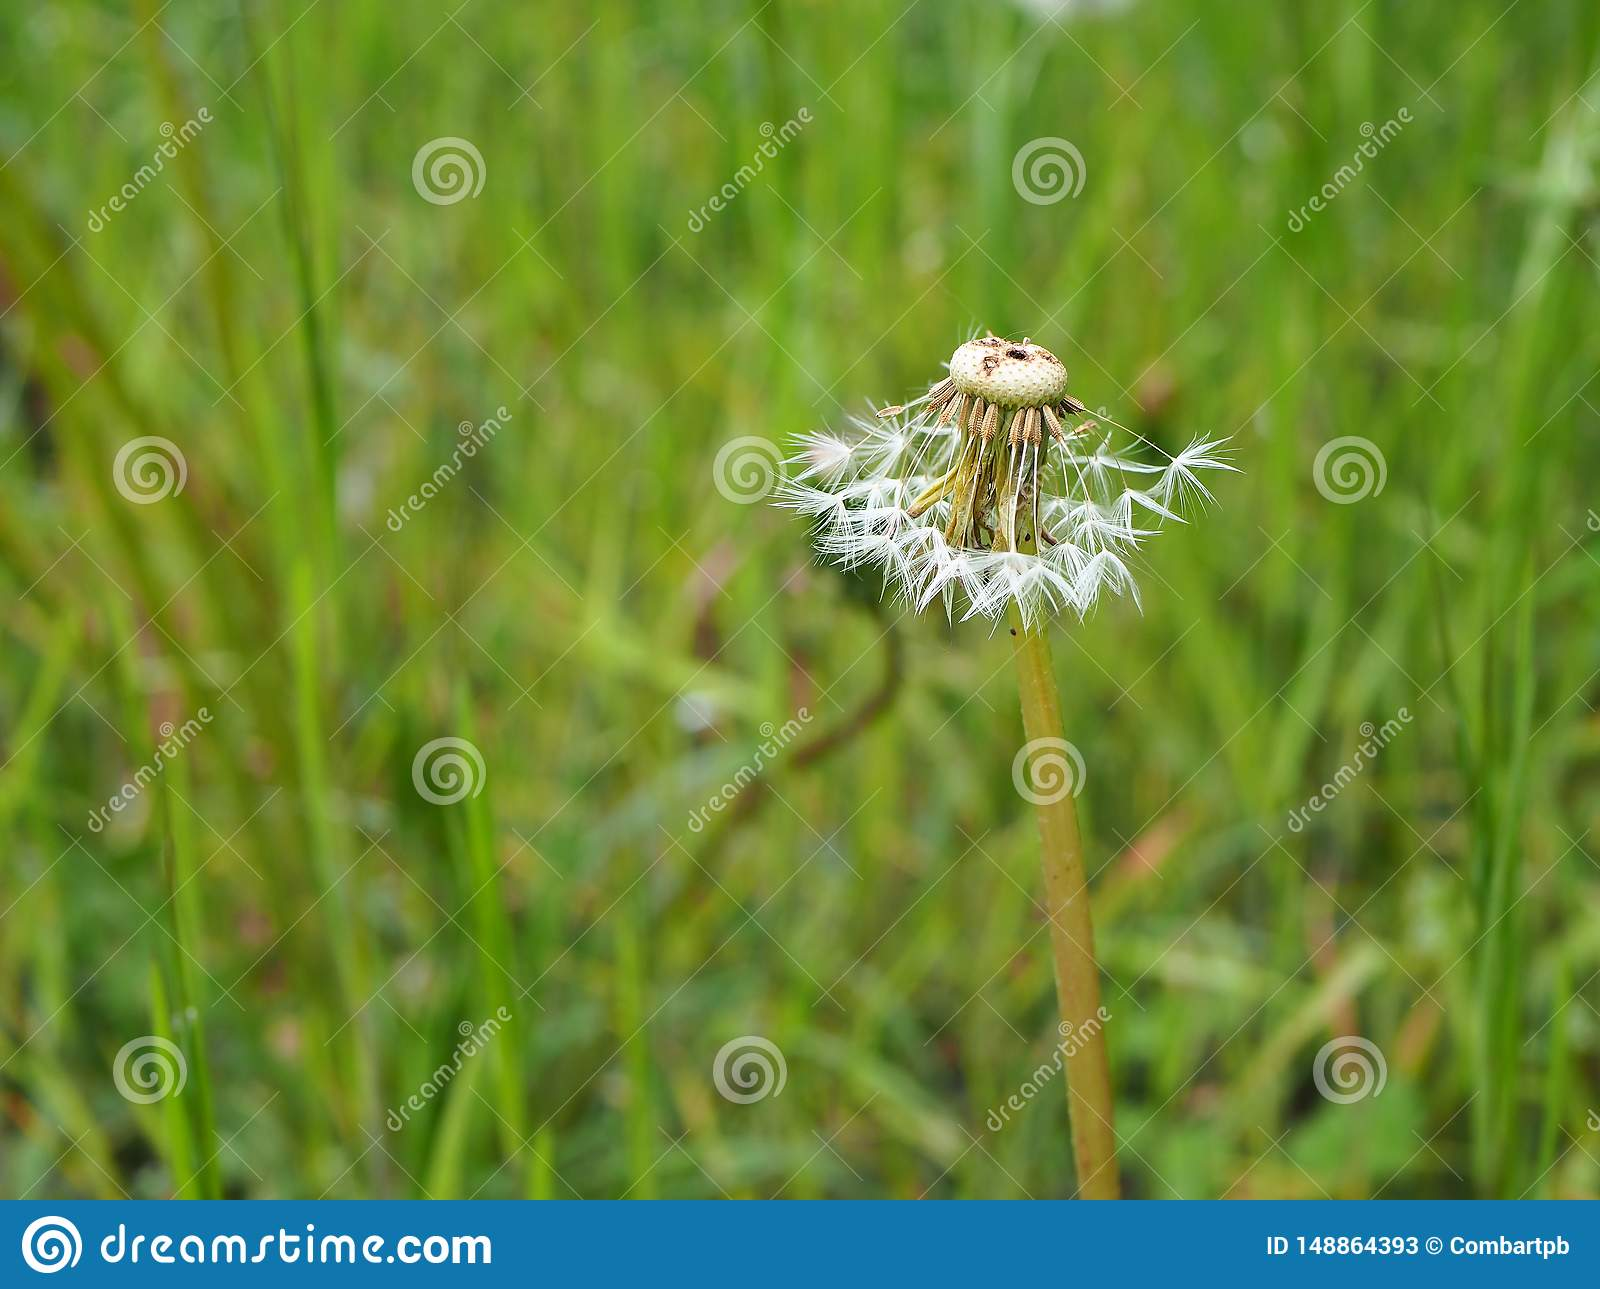 Dandelion in grass partly blown away by the wind